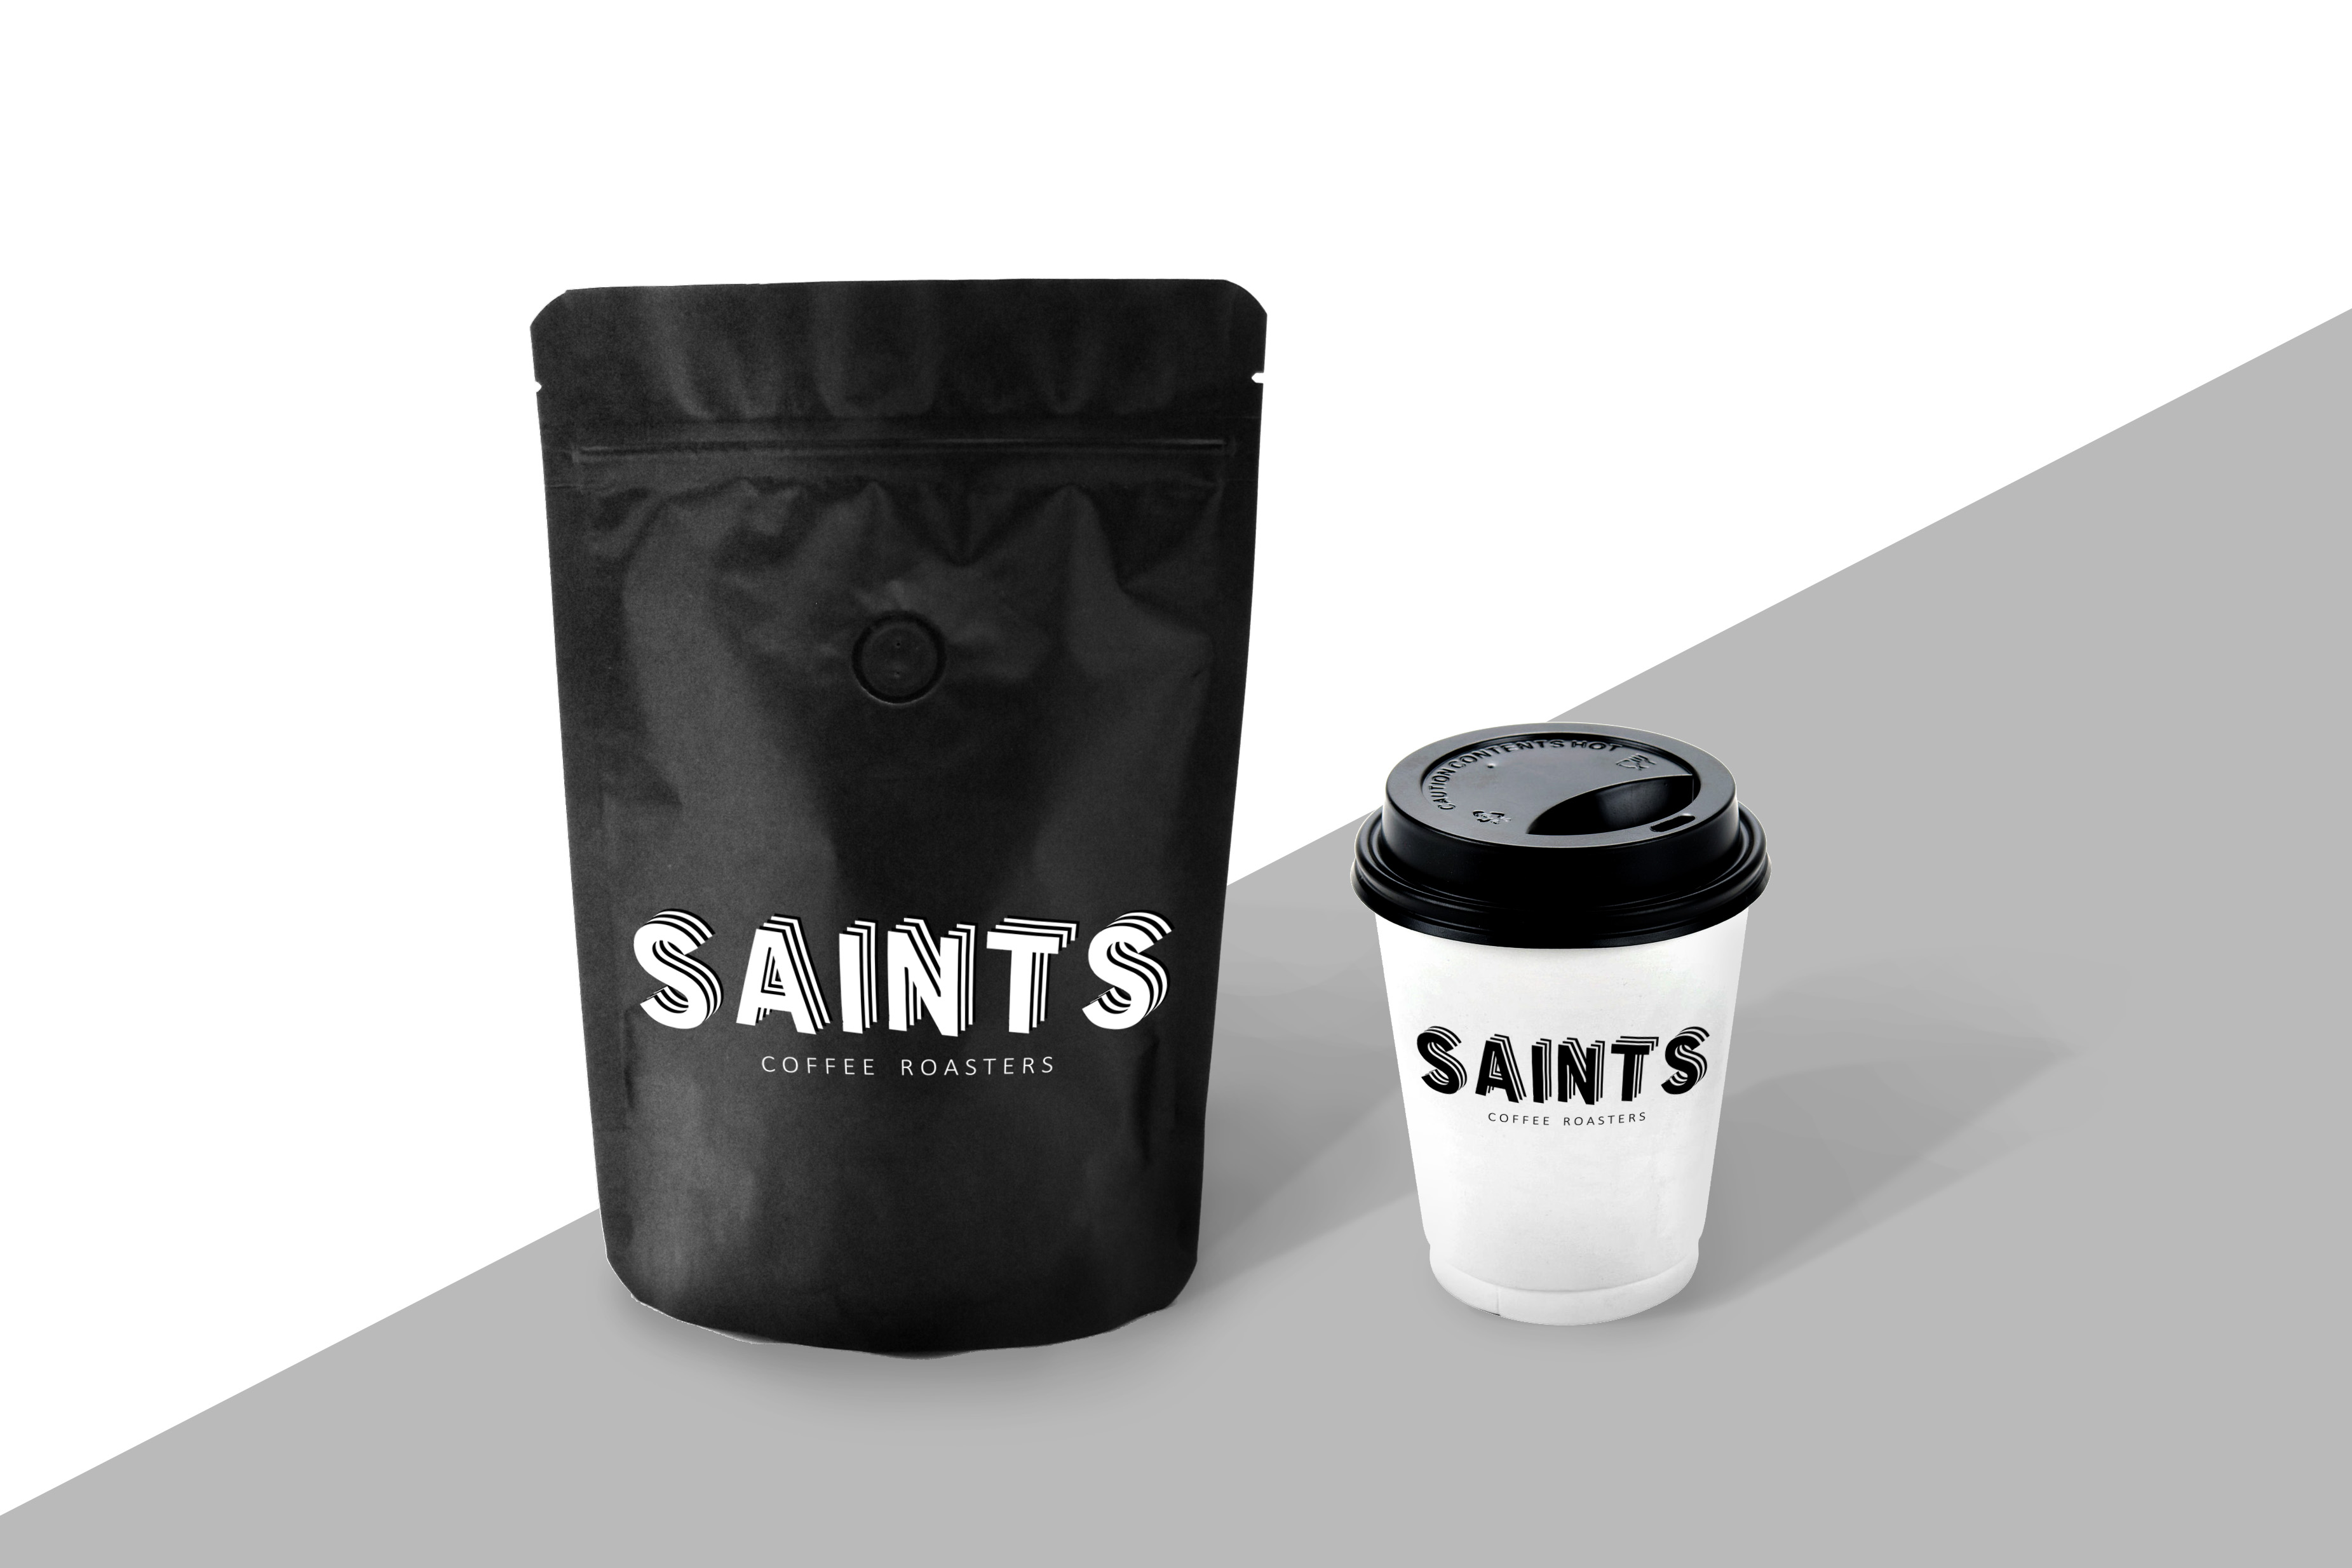 Saints Coffee branding design